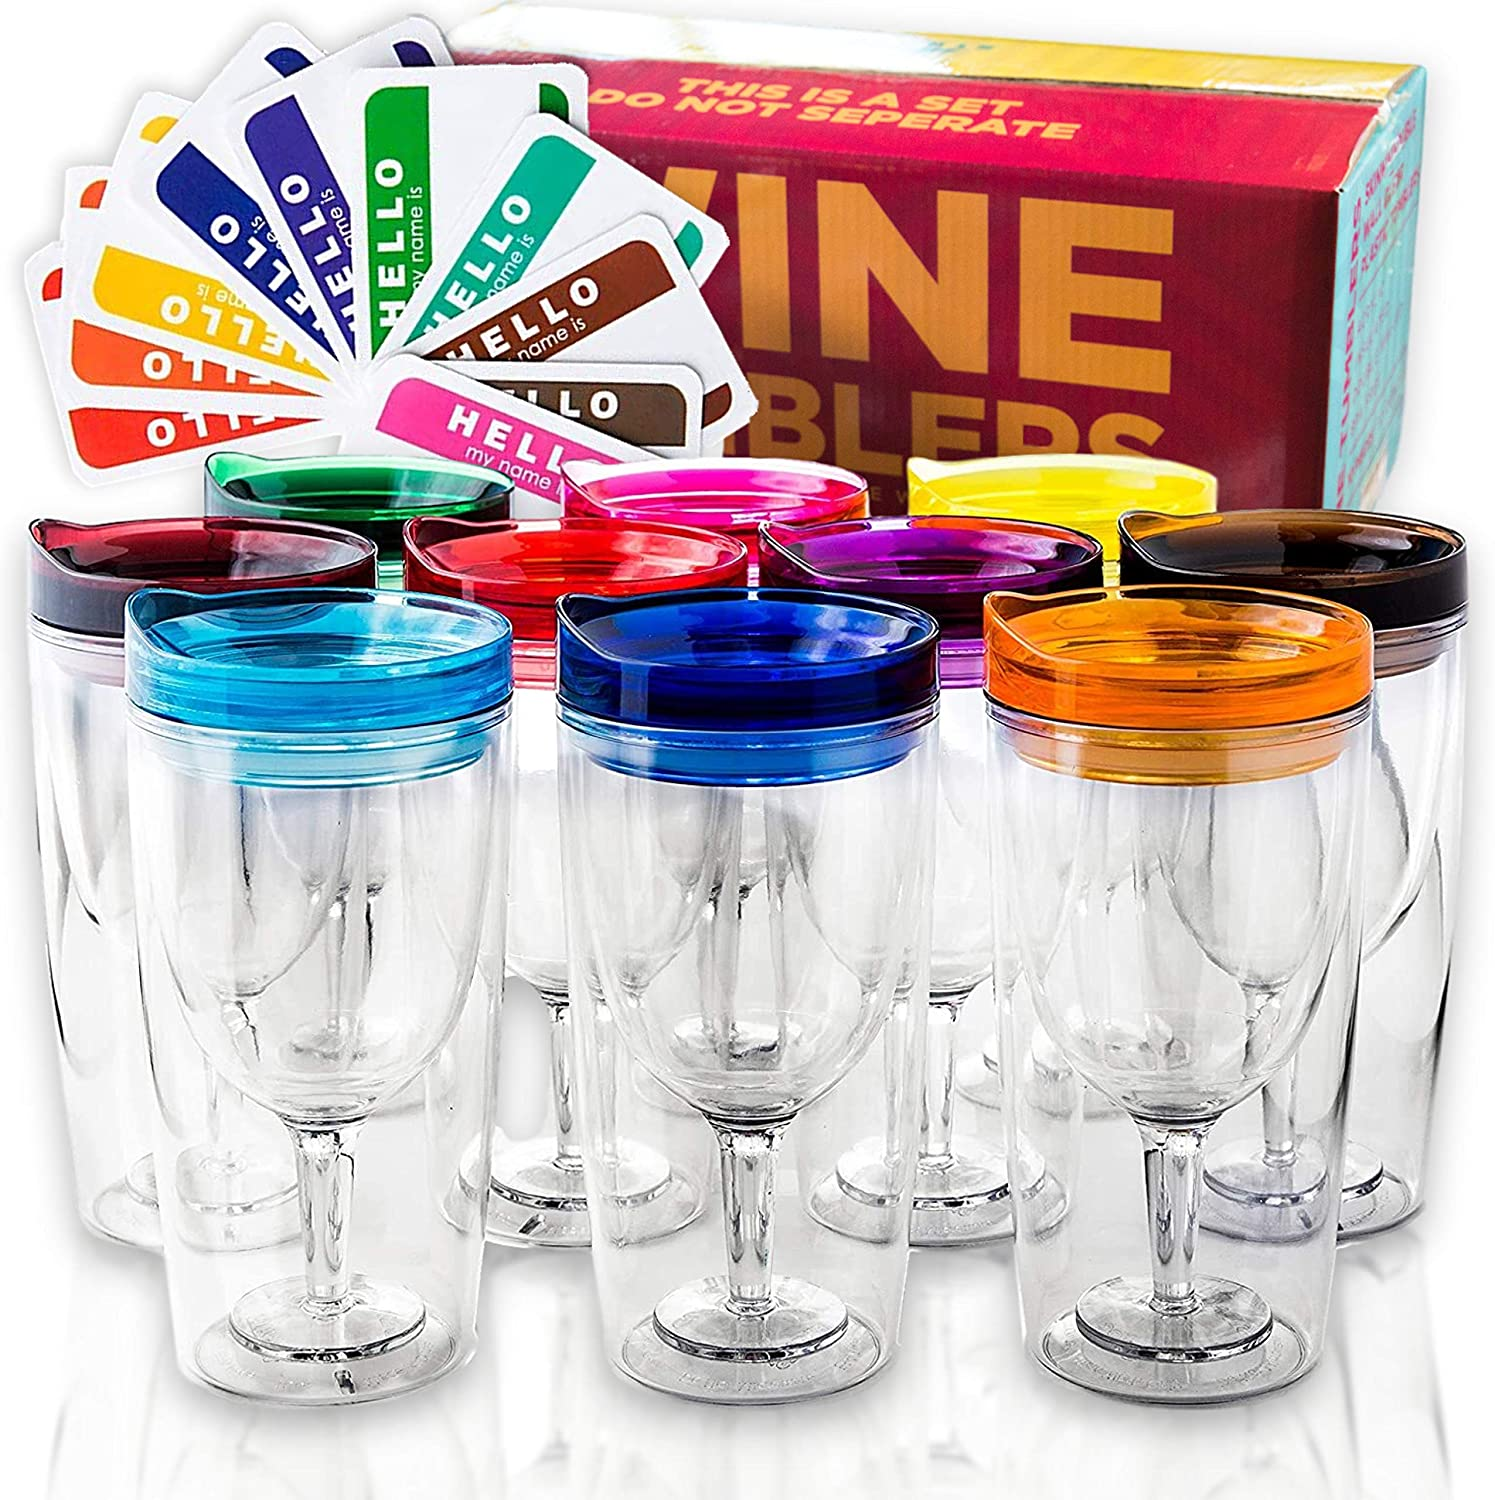 Amazon Com Insulated Wine Tumbler With Lid Set Of 10 Bonus Name Decals Outdoor Acrylic Plastic Wine Glasses 10oz Cup Tumblers In 10 Colors Adult Sippy Unbreakable Stemless Wine Glass Wine Glasses